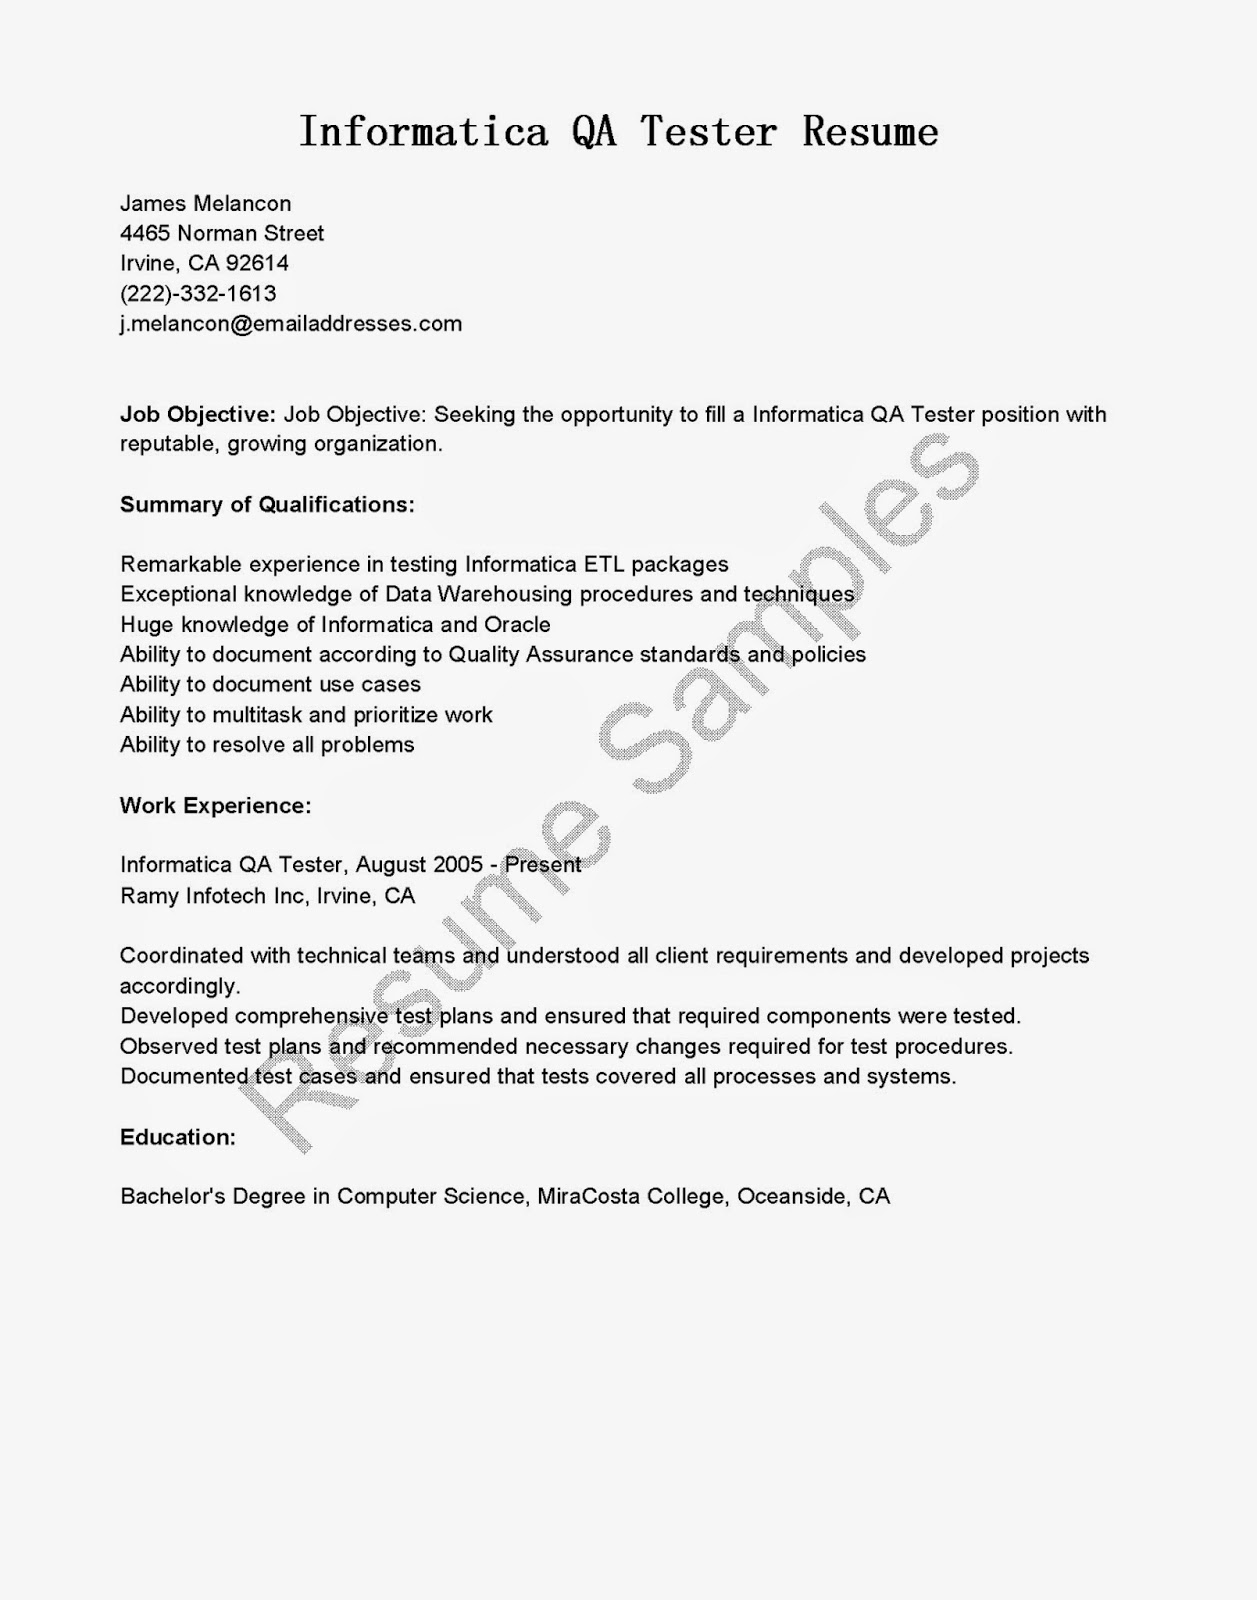 Resume For Qa Tester - marchigianadoc.tk